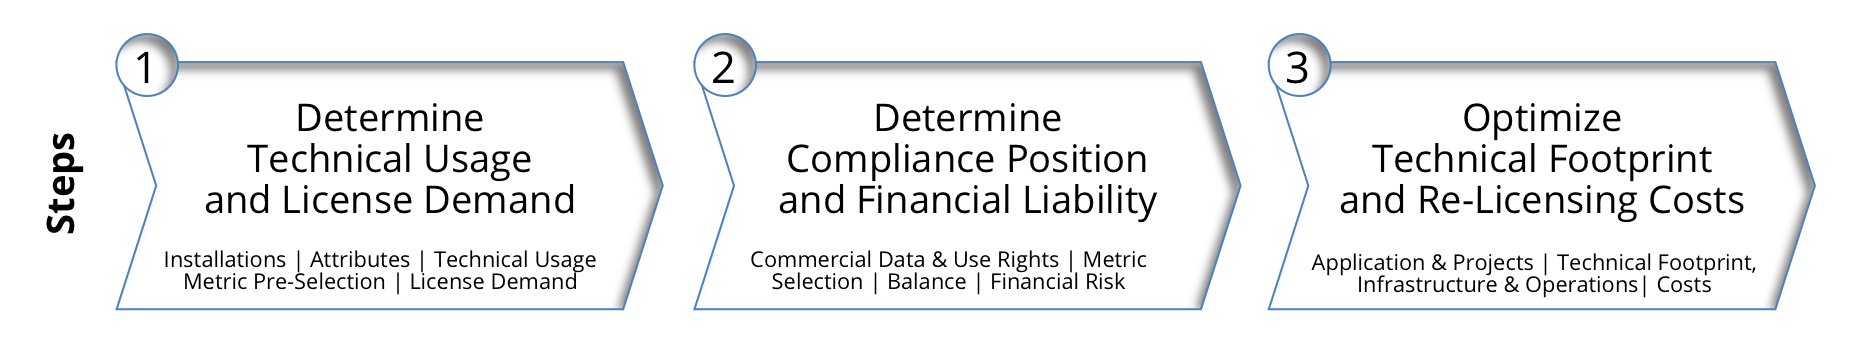 Internal Compliance Audit Of Oracle Database Products